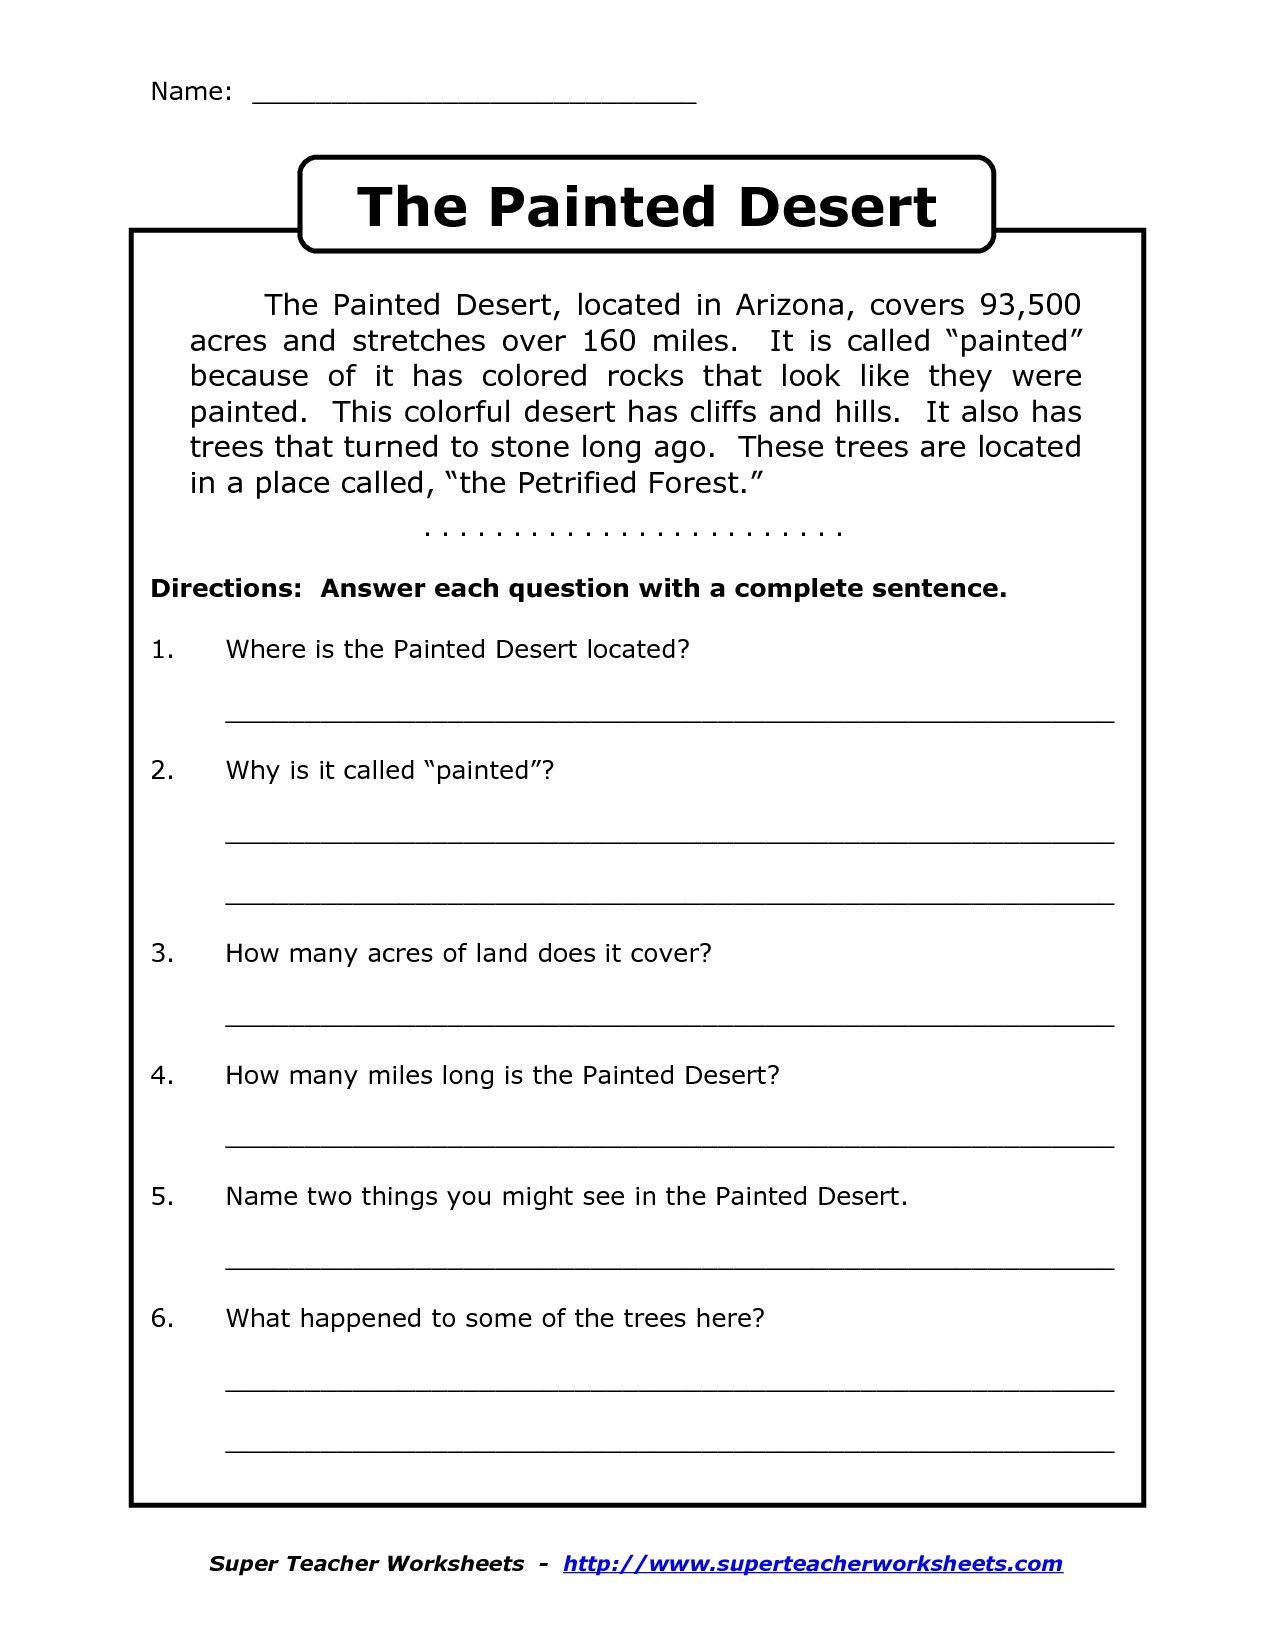 4th Grade English Worksheets Prehension Worksheet for 1st Grade Y2 P3 the Painted